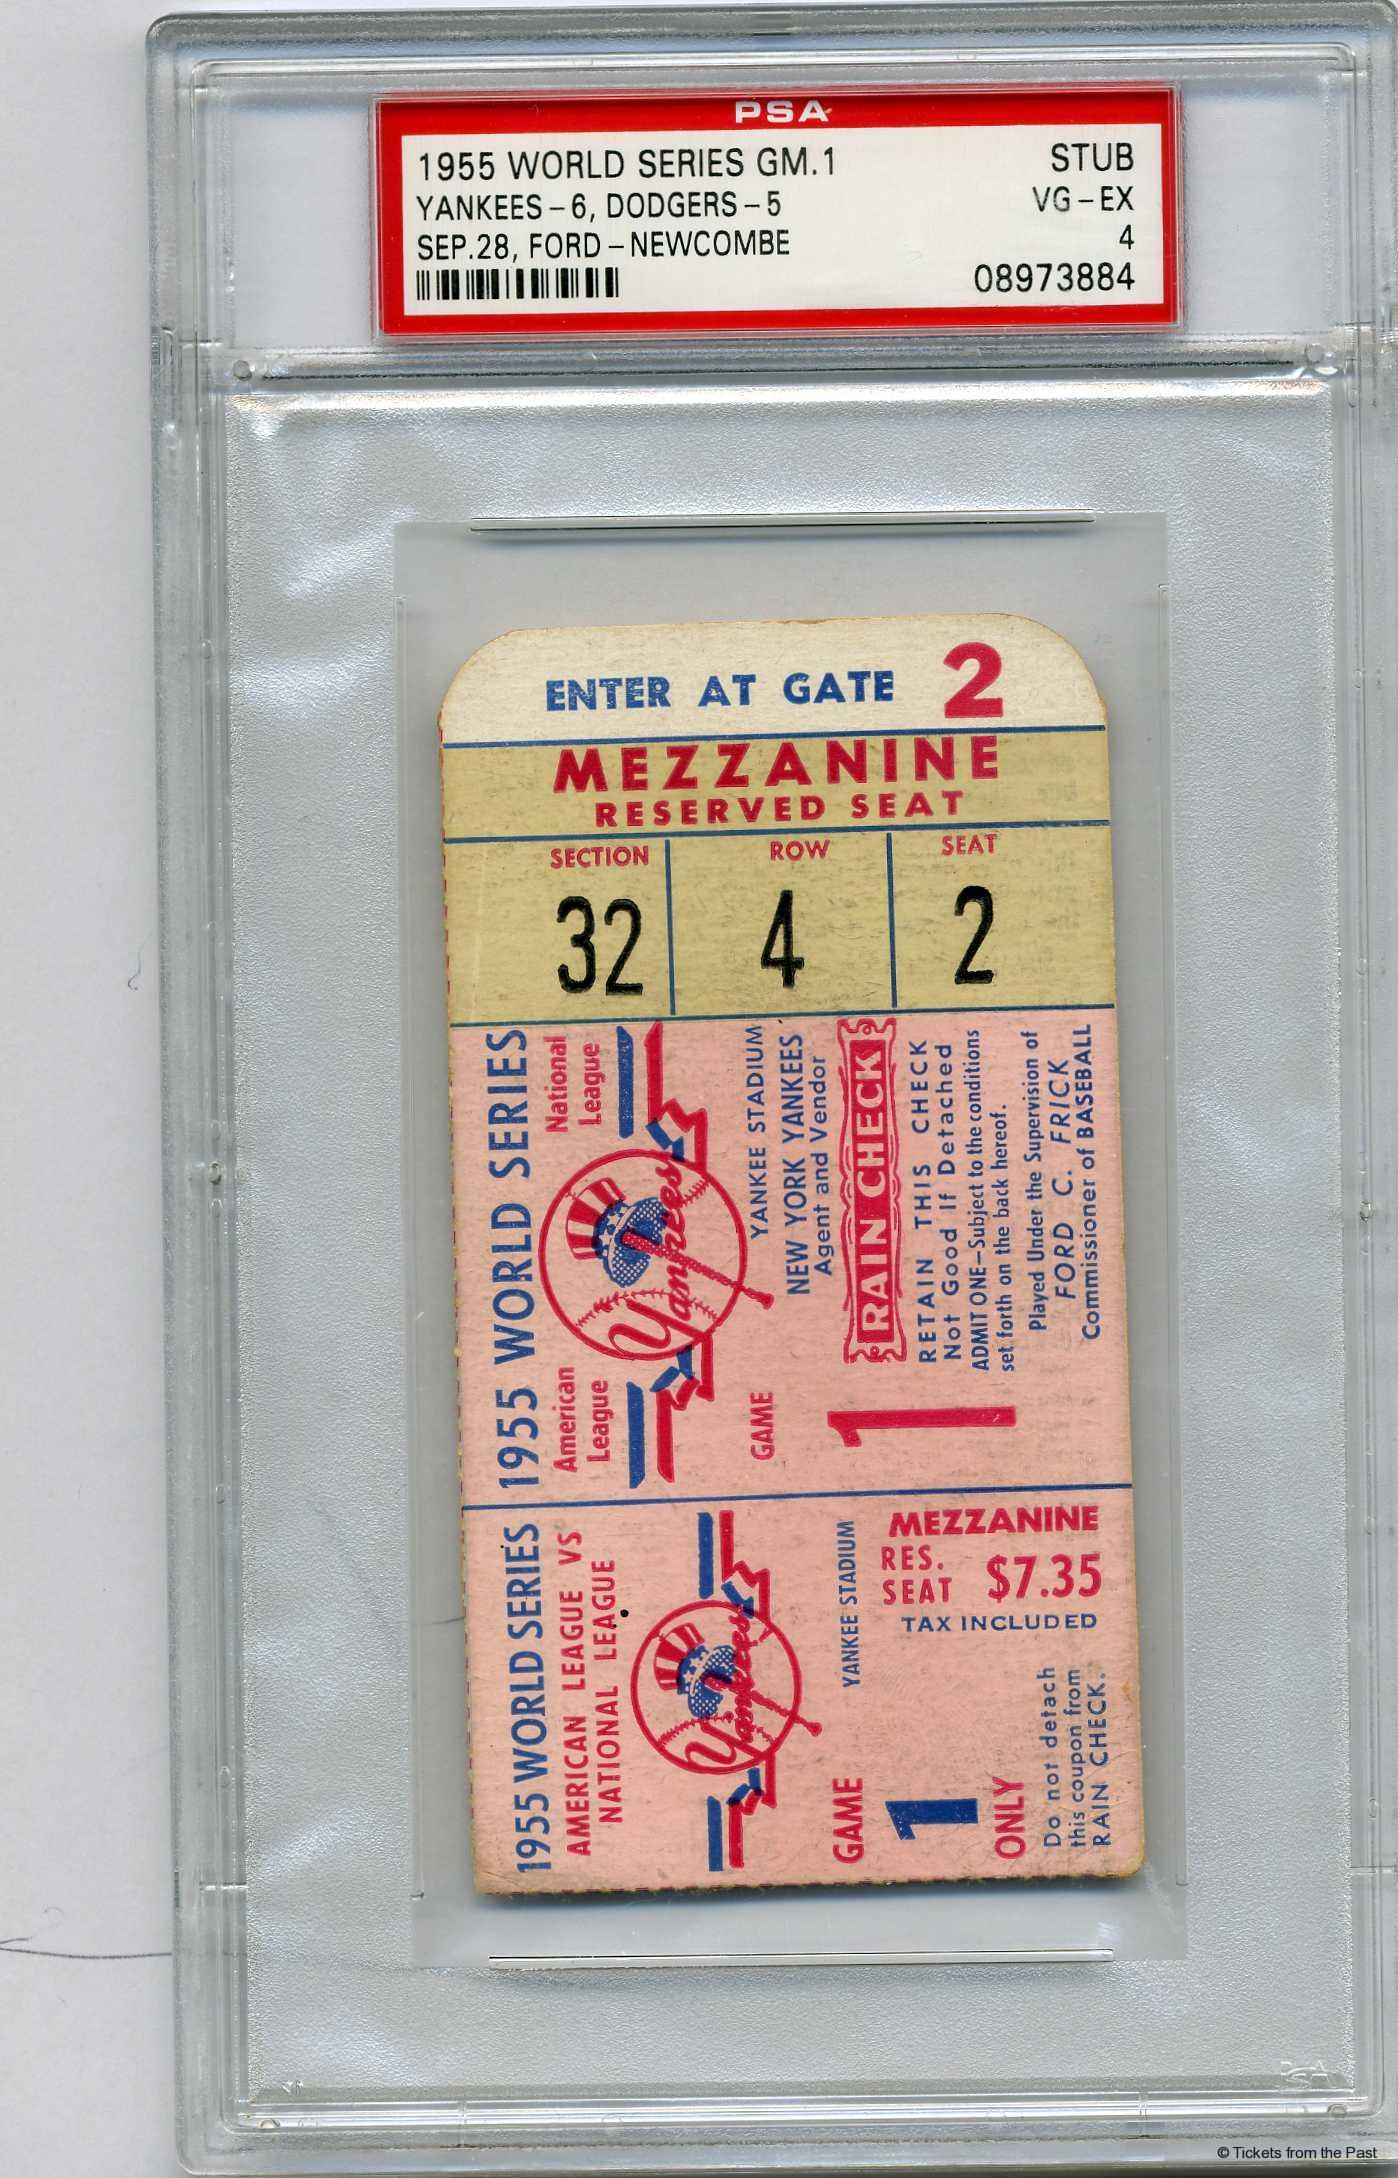 c60fe9d4 Home - Tickets From The Past